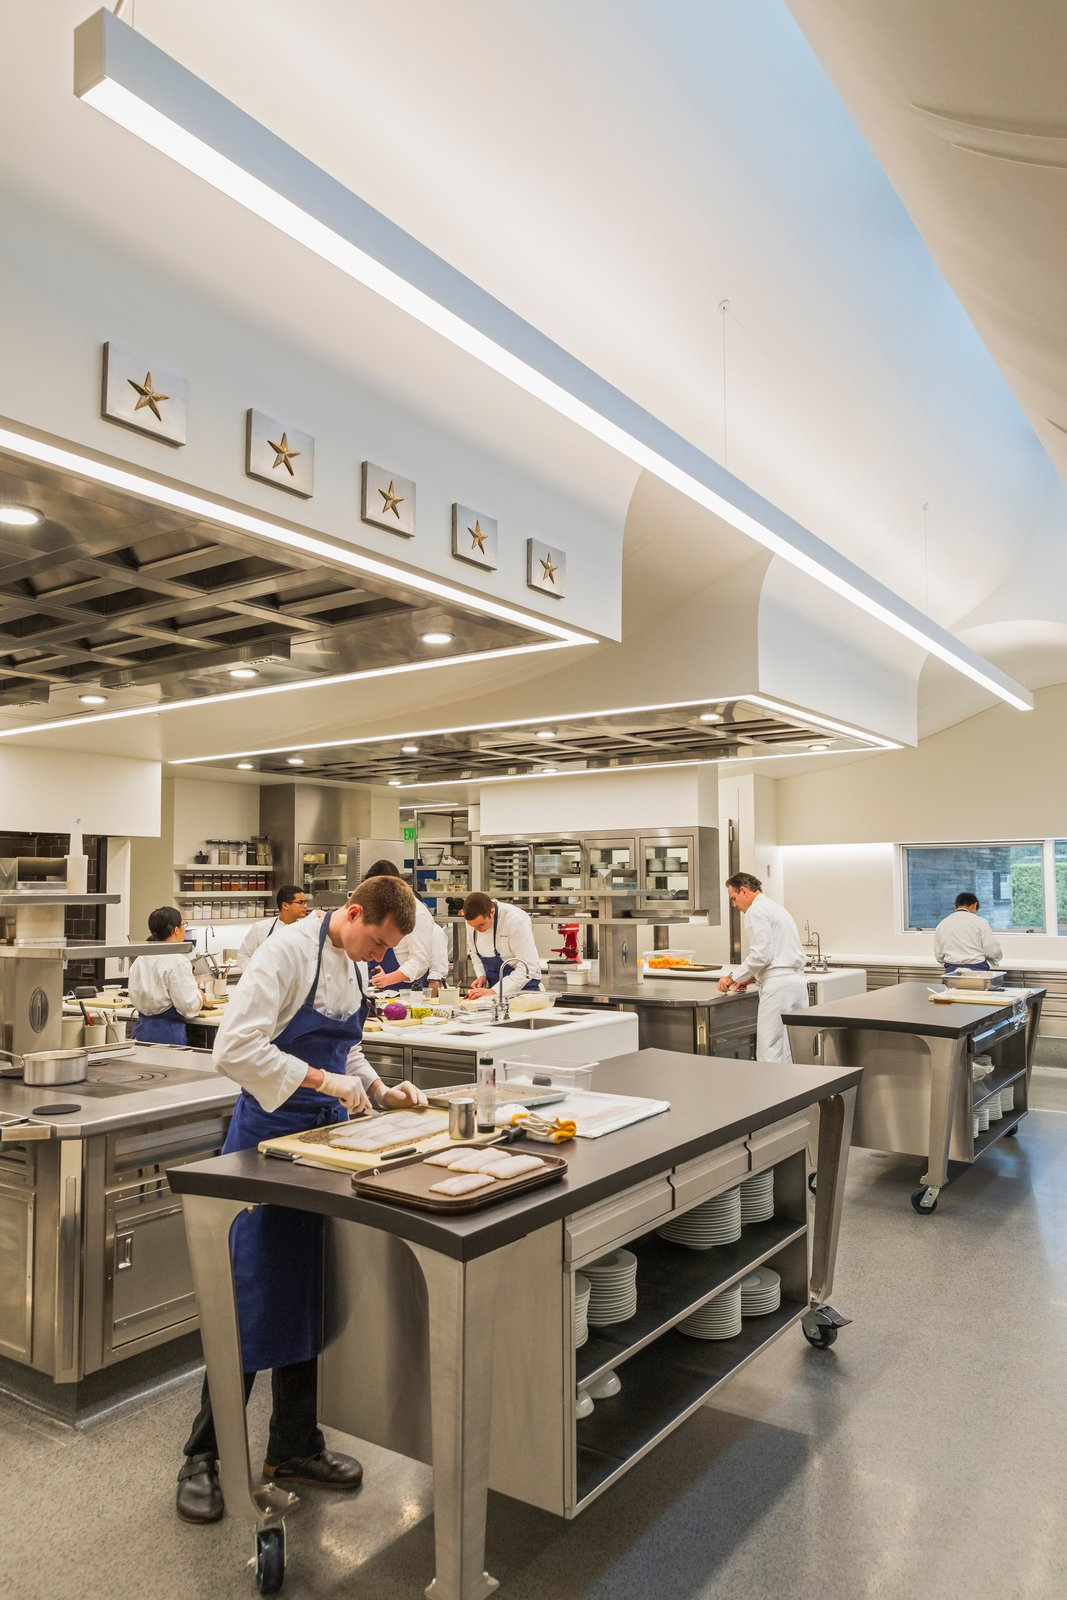 Kitchen, Metal Cabinet, Cooktops, Recessed Lighting, and Terrazzo Floor The 2,000-square-foot kitchen provides a comfortable, light-filled working space for the chefs and is configured as a single, continuous space.  Photo 8 of 12 in A Look Inside The French Laundry's Stunning $10M Renovation